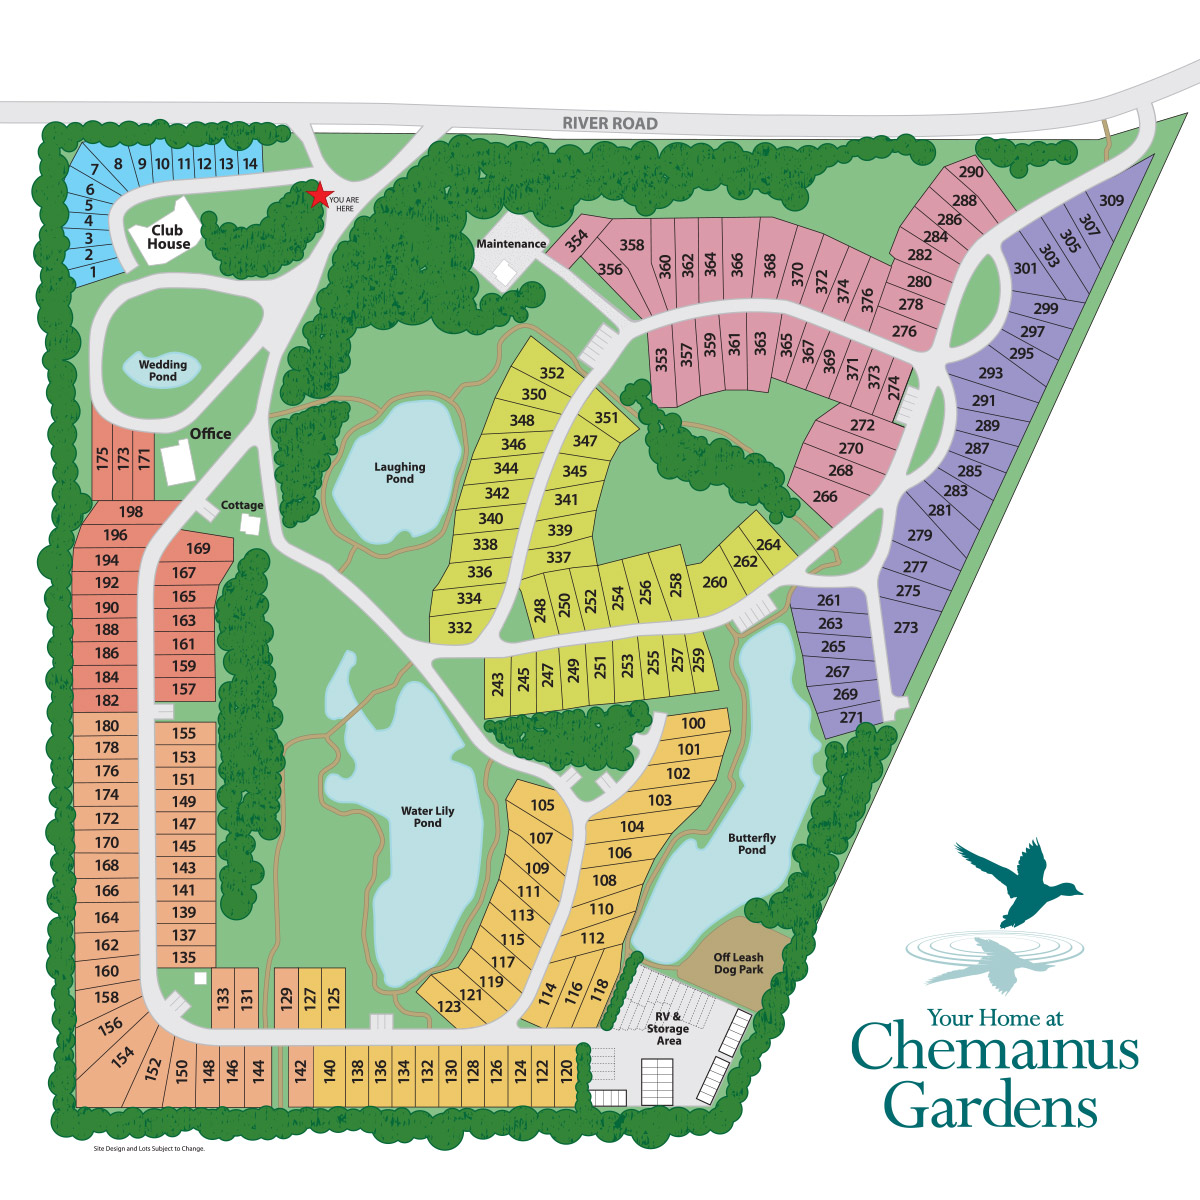 Chemainus Gardens Site Map as of February 2018